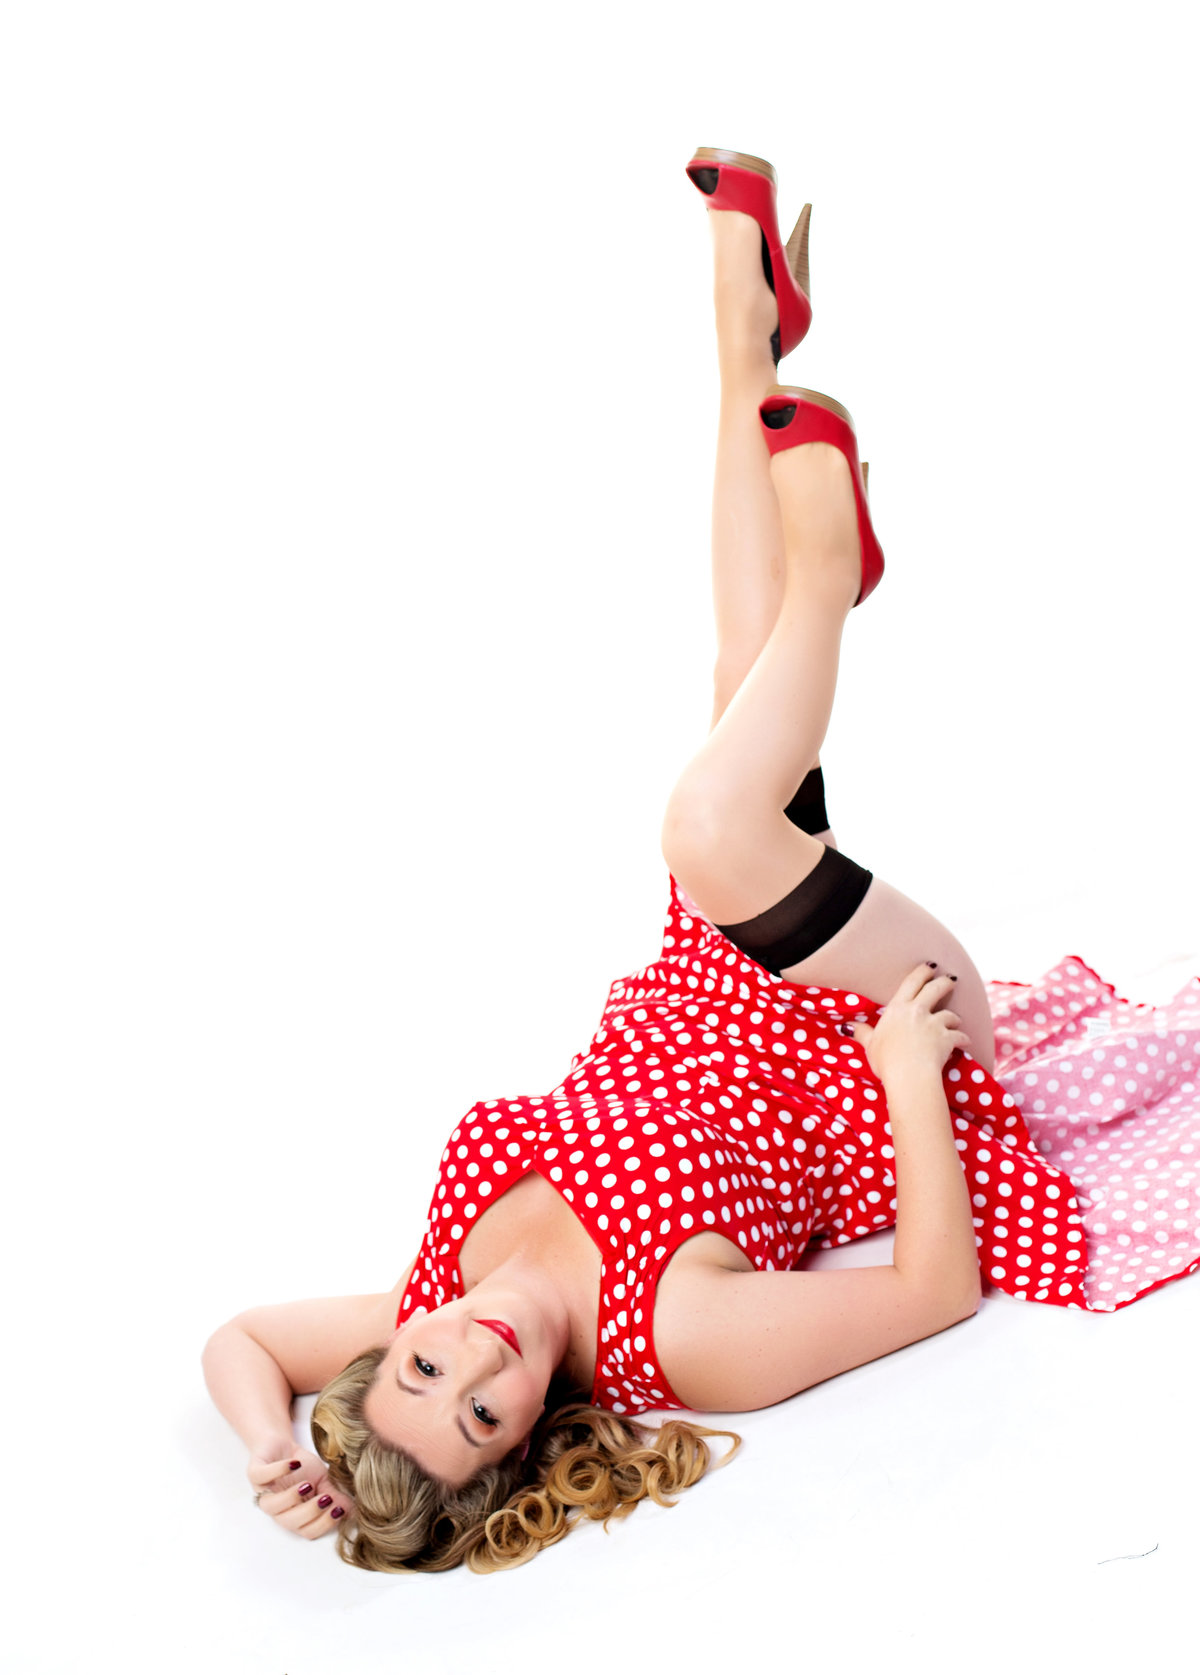 indiana vintage cheesecake style pinup photography